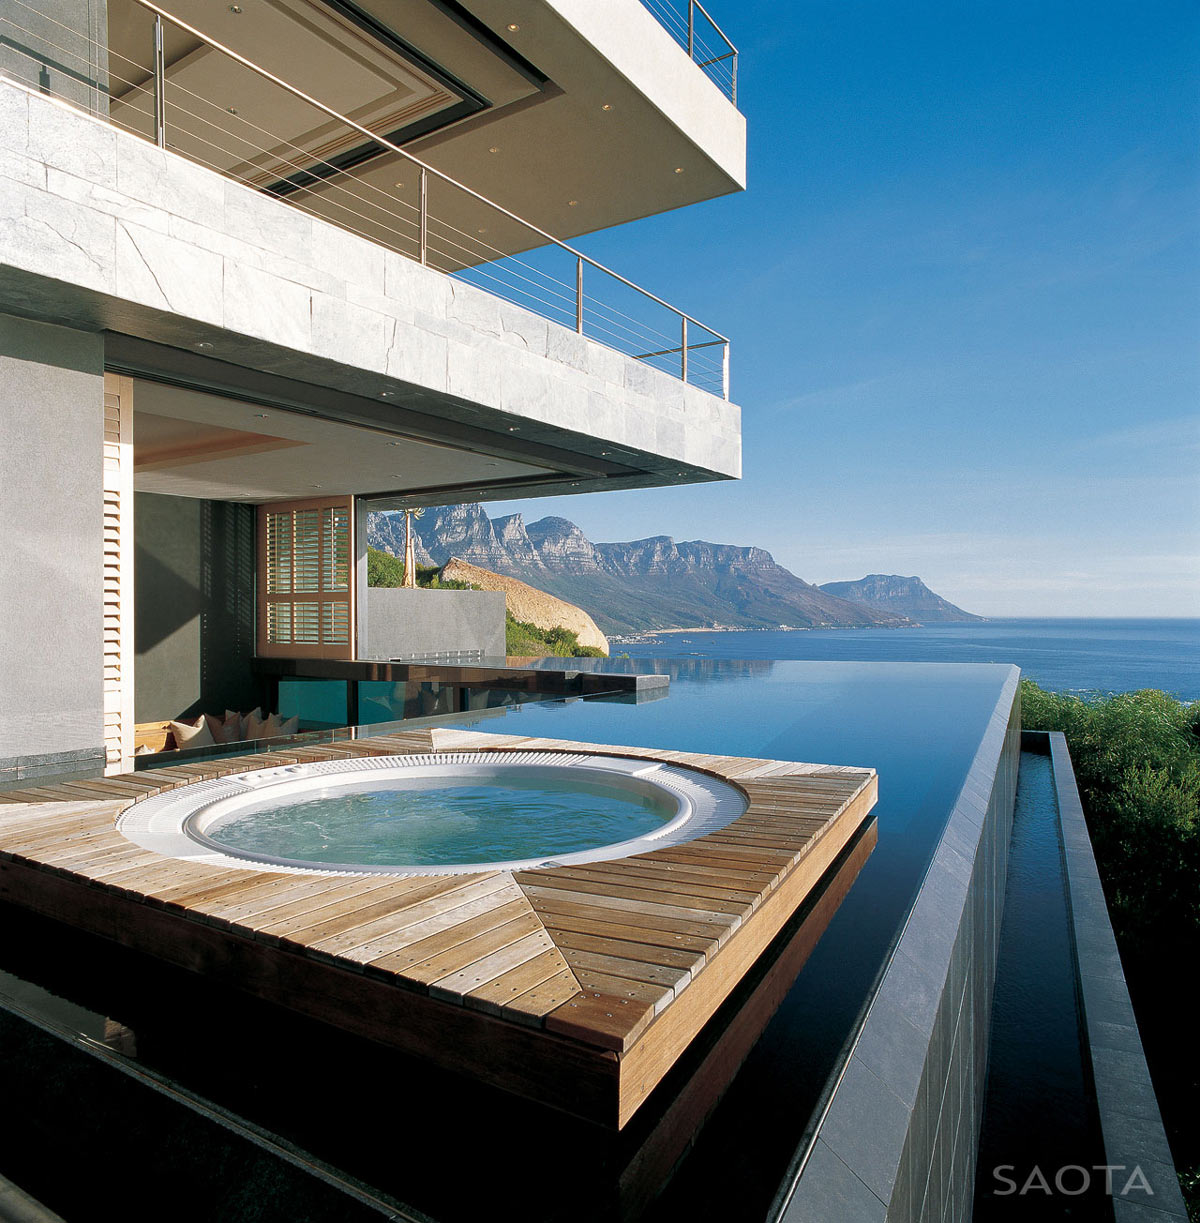 Infinity Pool, Jacuzzi, Ocean Views, St Leon 10 in Cape Town, South Africa by SAOTA and Antoni Associates